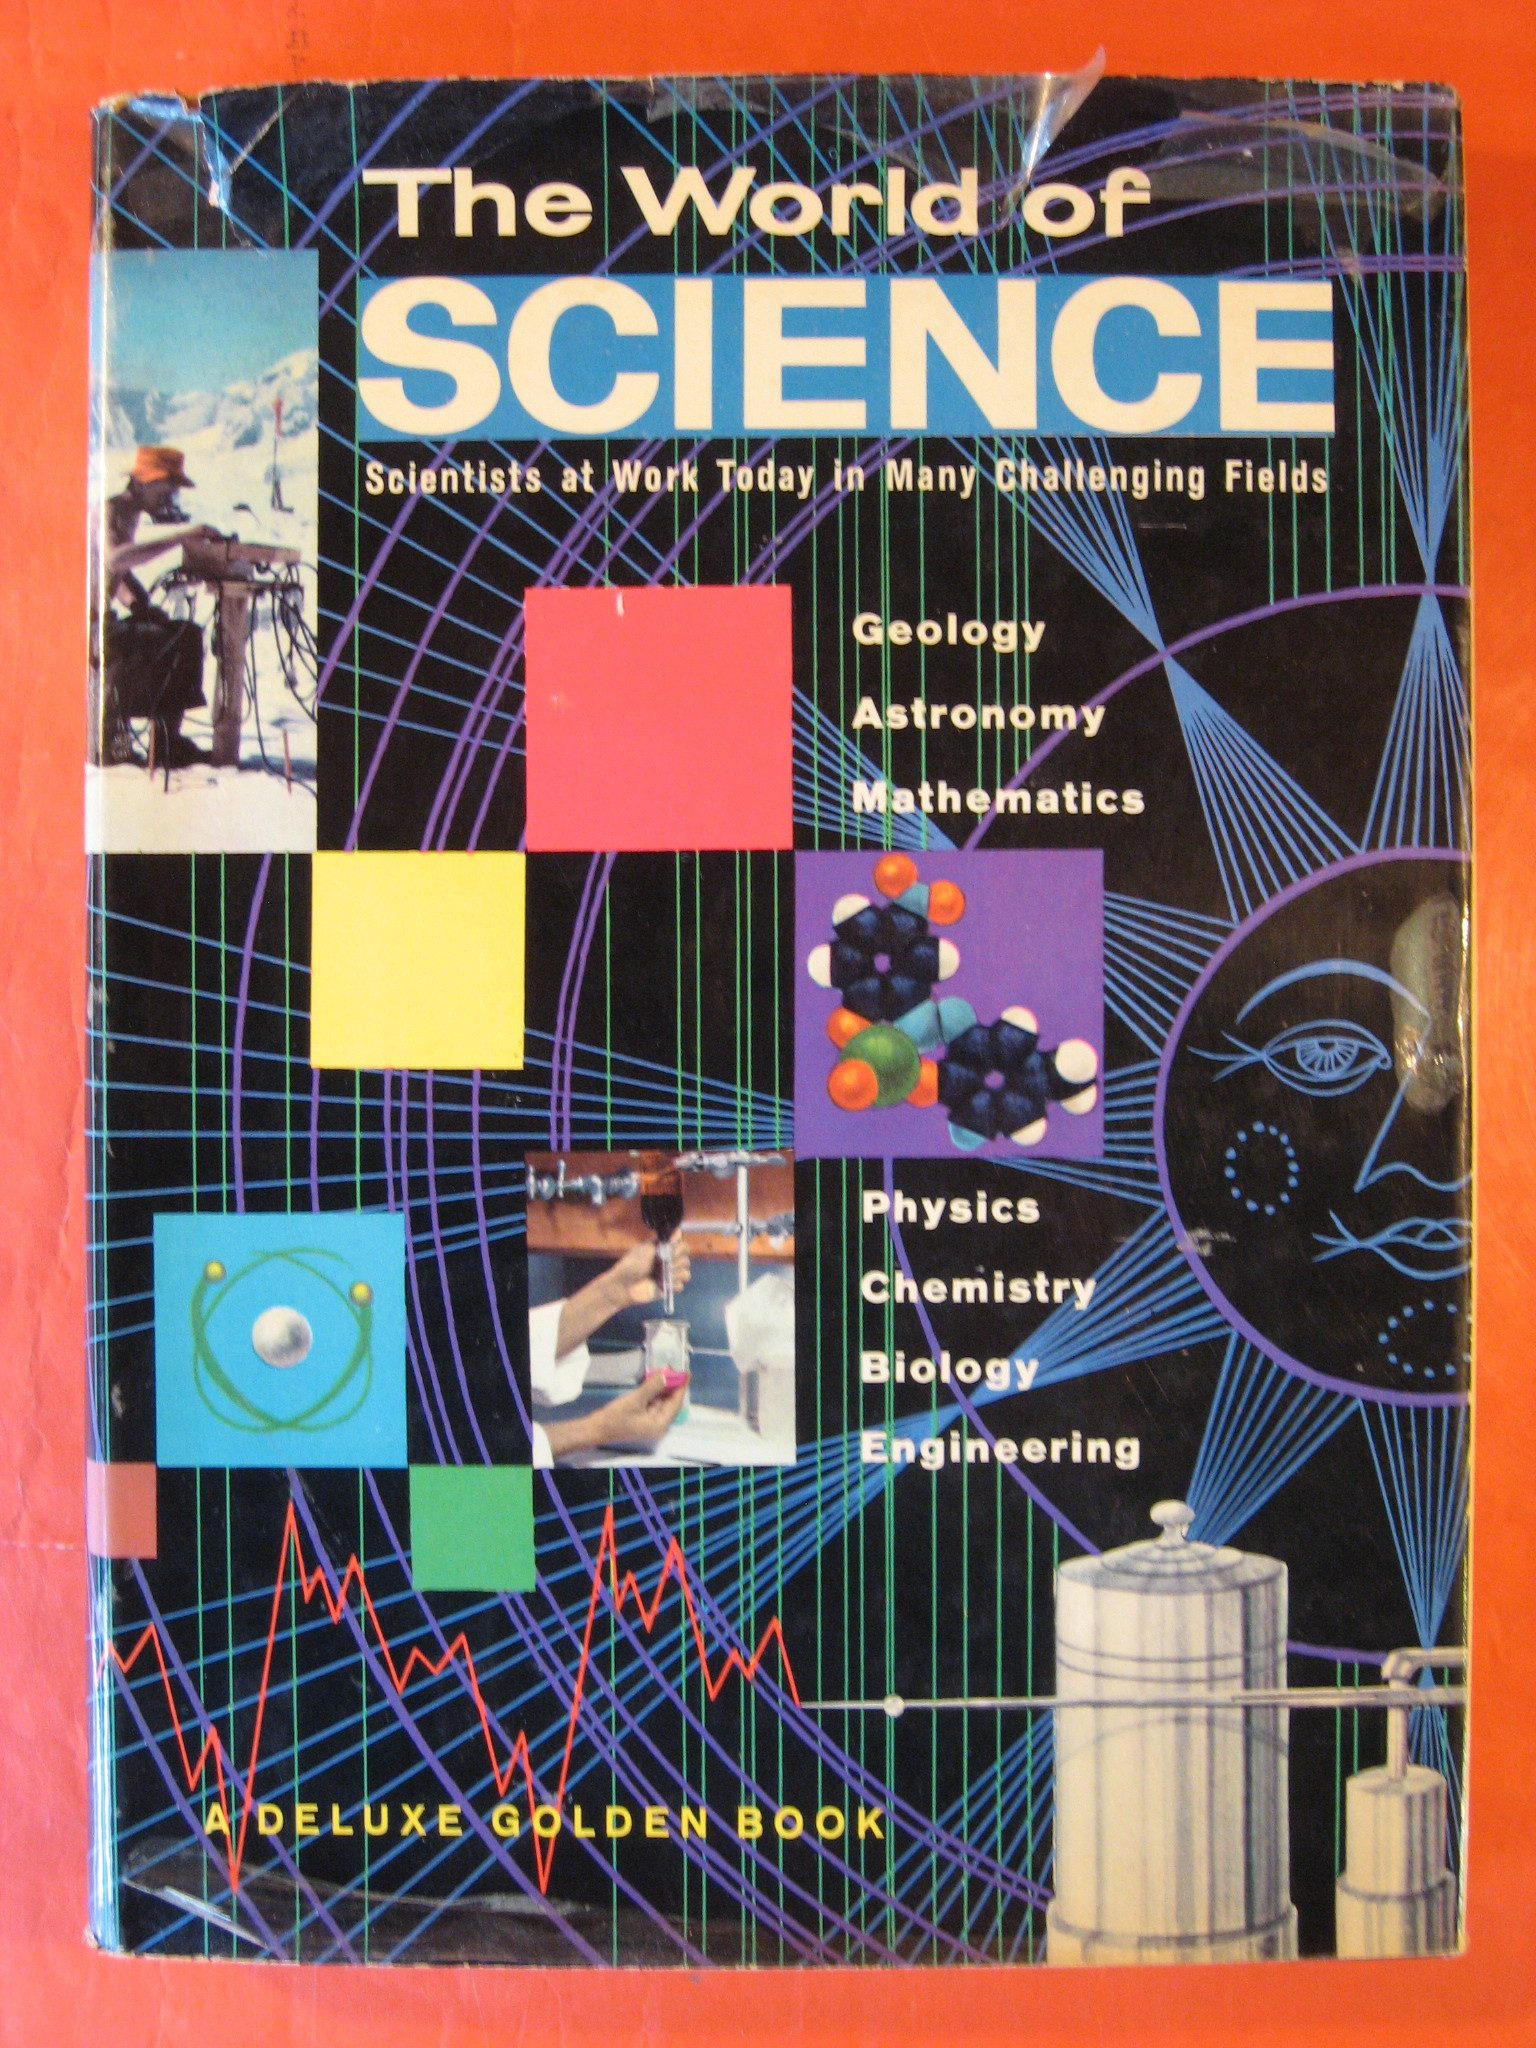 The World of Science:  Scientists at Work Today in Many Challenging Fields, Watson, Jane Werner